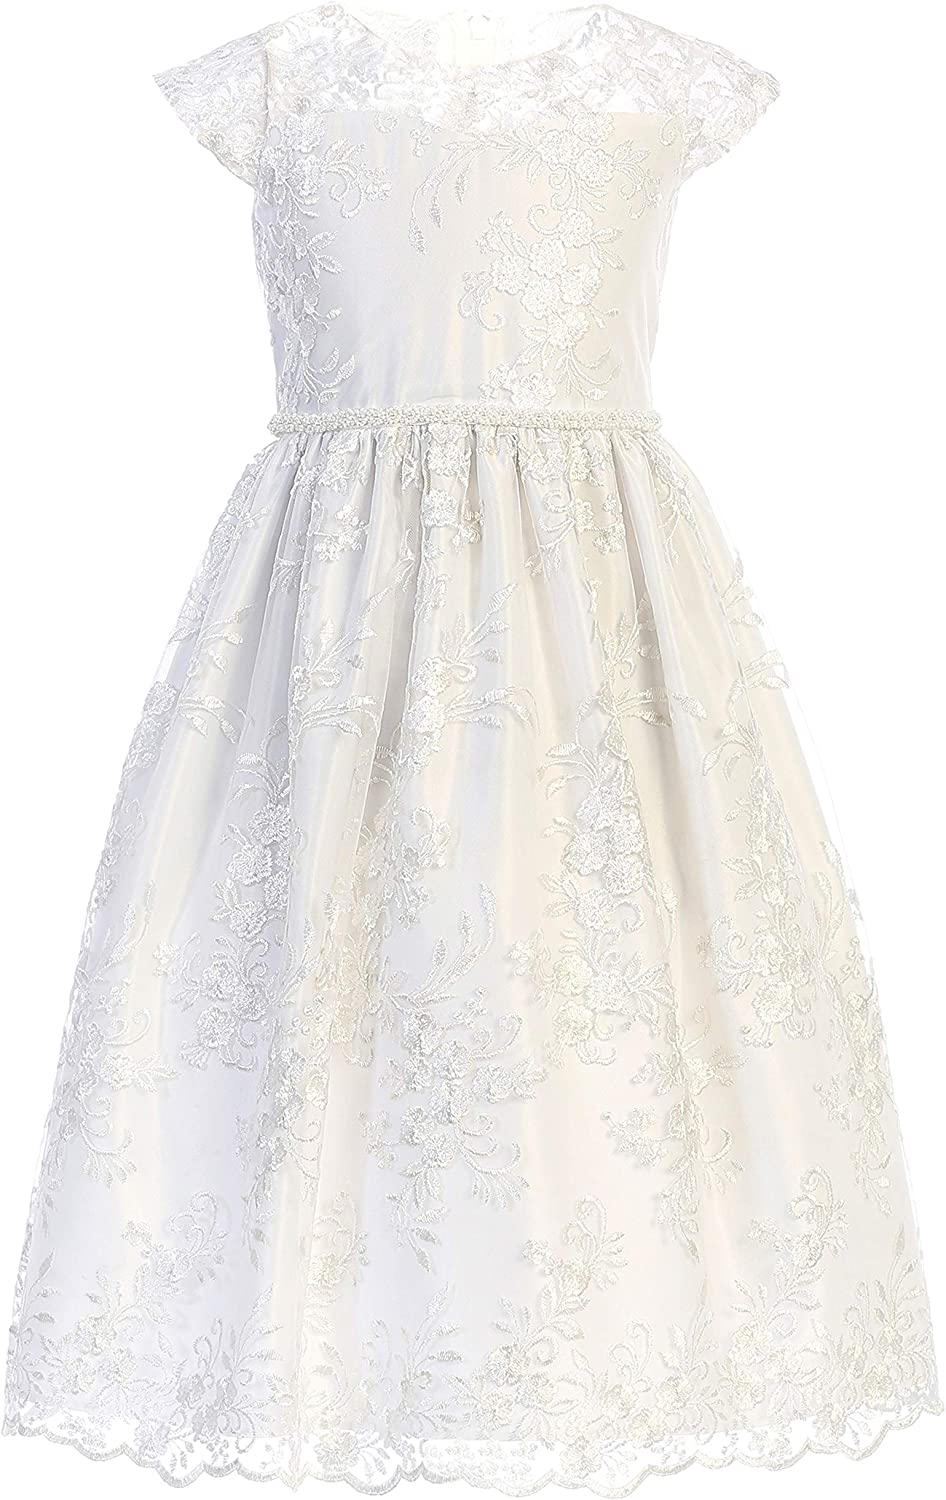 Sweet Kids Girls' Floral Embroidered Lace with Pearl Trim Dress